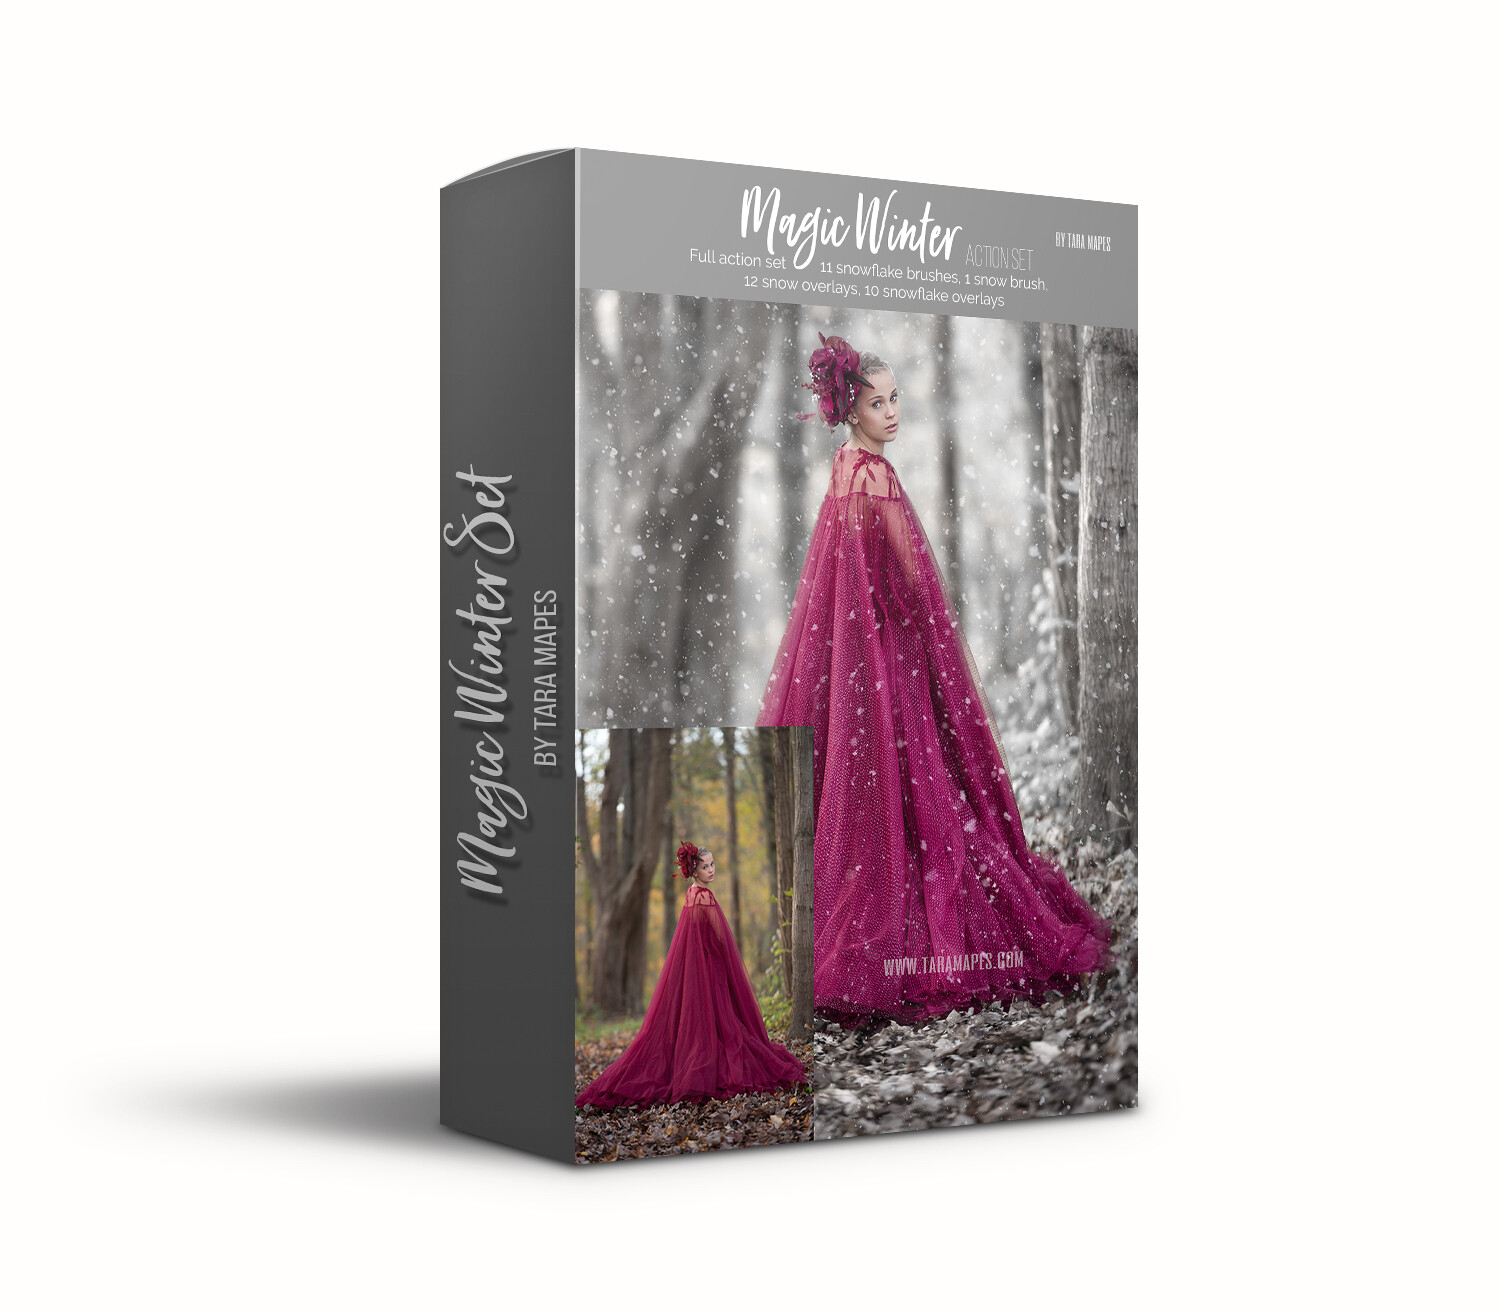 Magic Winter Action Set by Tara Mapes -  Winterize your image - Photoshop Action and Overlays for Winter Look - Demo tutorial in product description